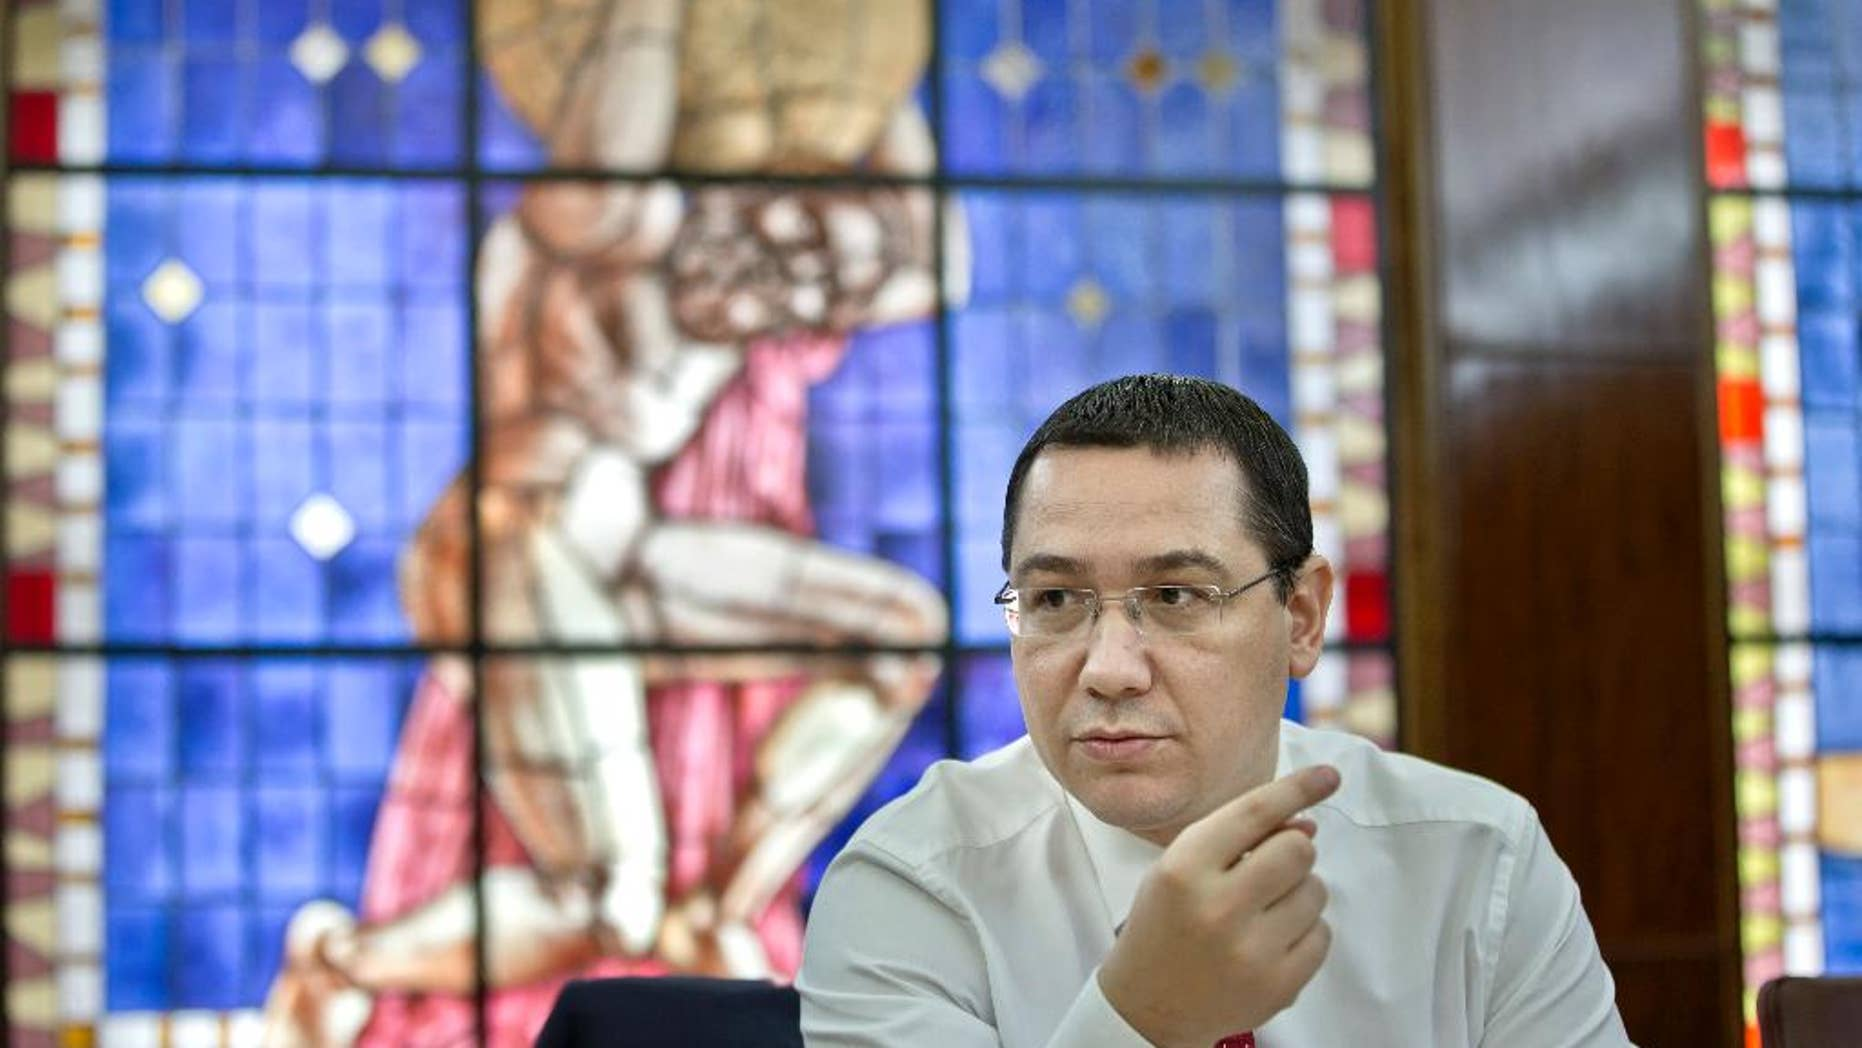 FILE - In this Thursday, May 7, 2015 file photo, Romanian Prime Minister Victor Ponta gestures during a meeting with the foreign media in Bucharest, Romania, Thursday, May 7, 2015. Romania's prime minister was slammed by opponents Monday, June 22, 2015 after requesting a month's medical leave in Turkey as prosecutors investigate him for alleged corruption. (AP Photo/Vadim Ghirda, File)